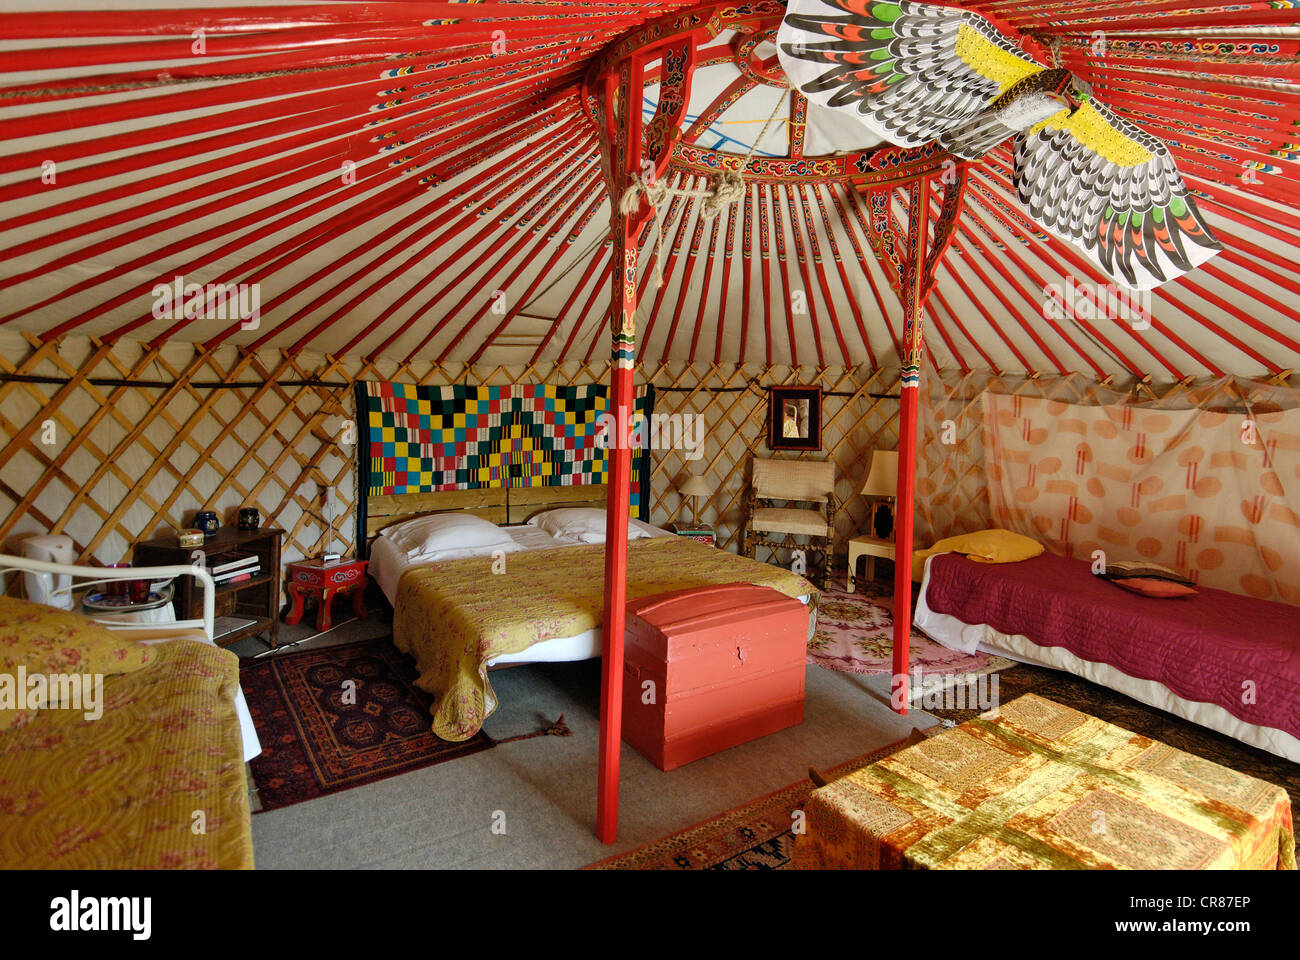 France, Gard, Barjac, Mongolian Yurt Camp At Mas Escombelle, Circular Tent  That Has Not Changed For Over A Thousand Years